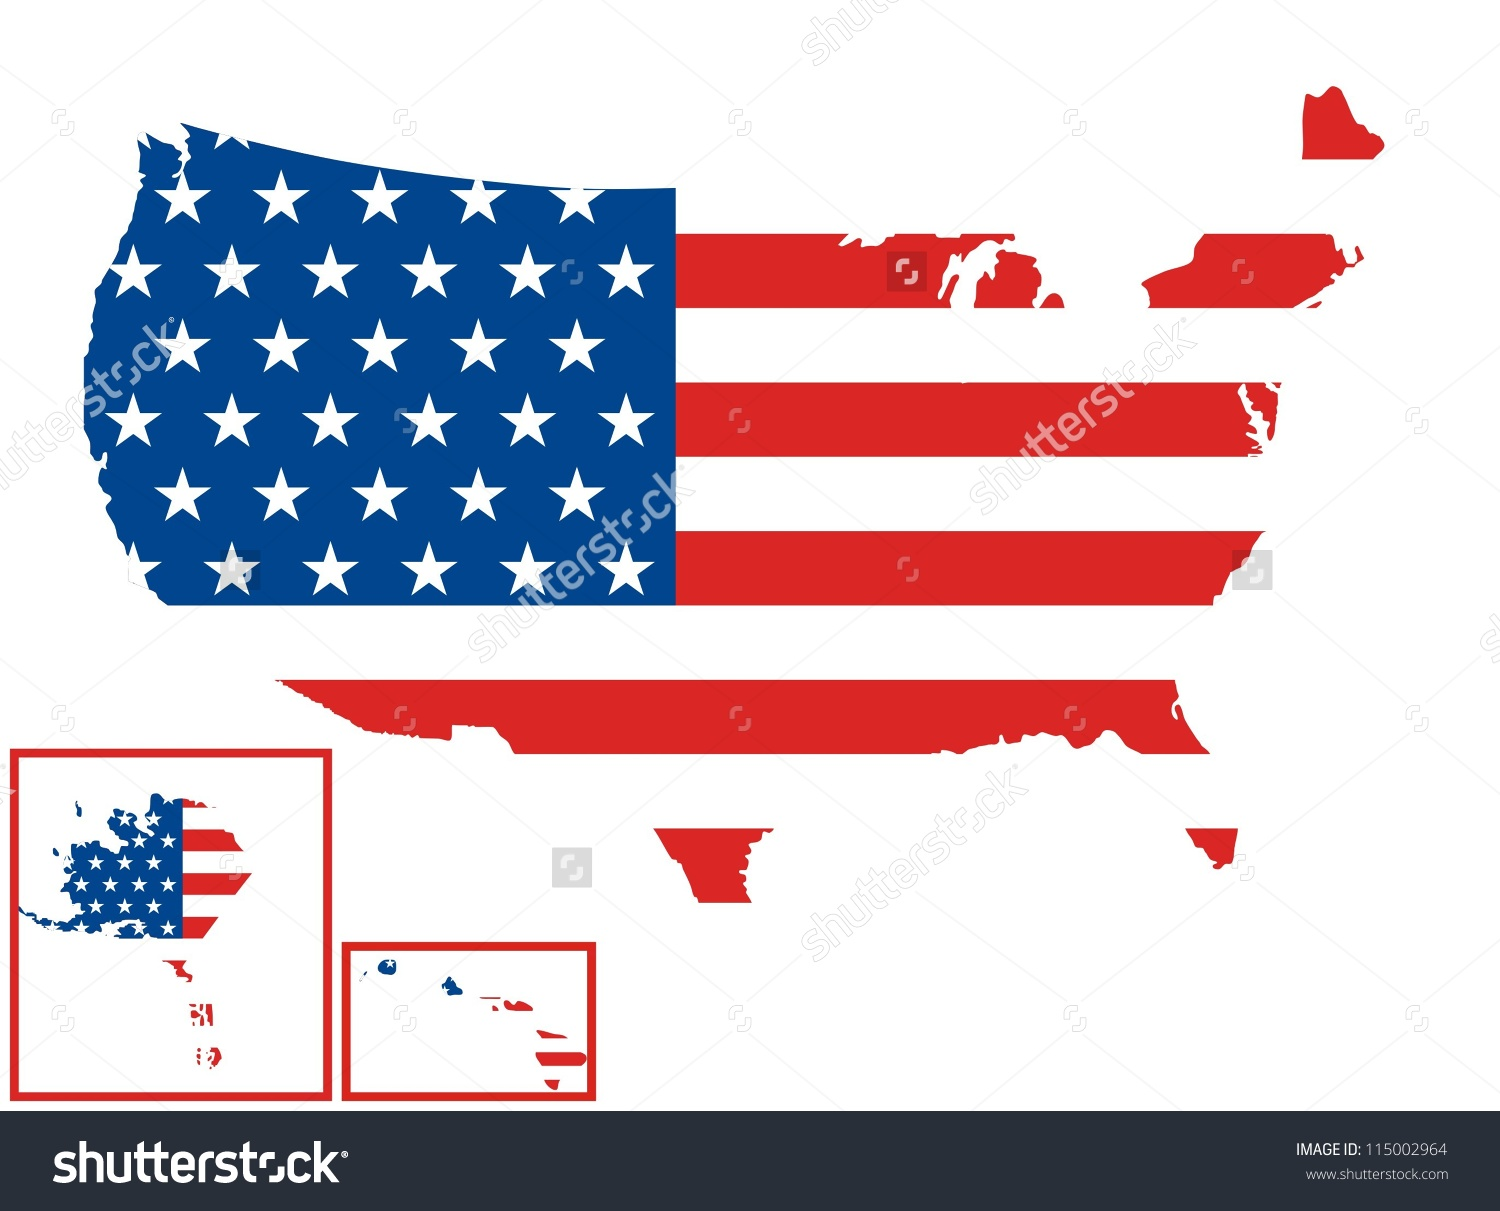 Us map flag clipart image black and white stock Usa Map United States Flag Stock Illustration 115002964 - Shutterstock image black and white stock